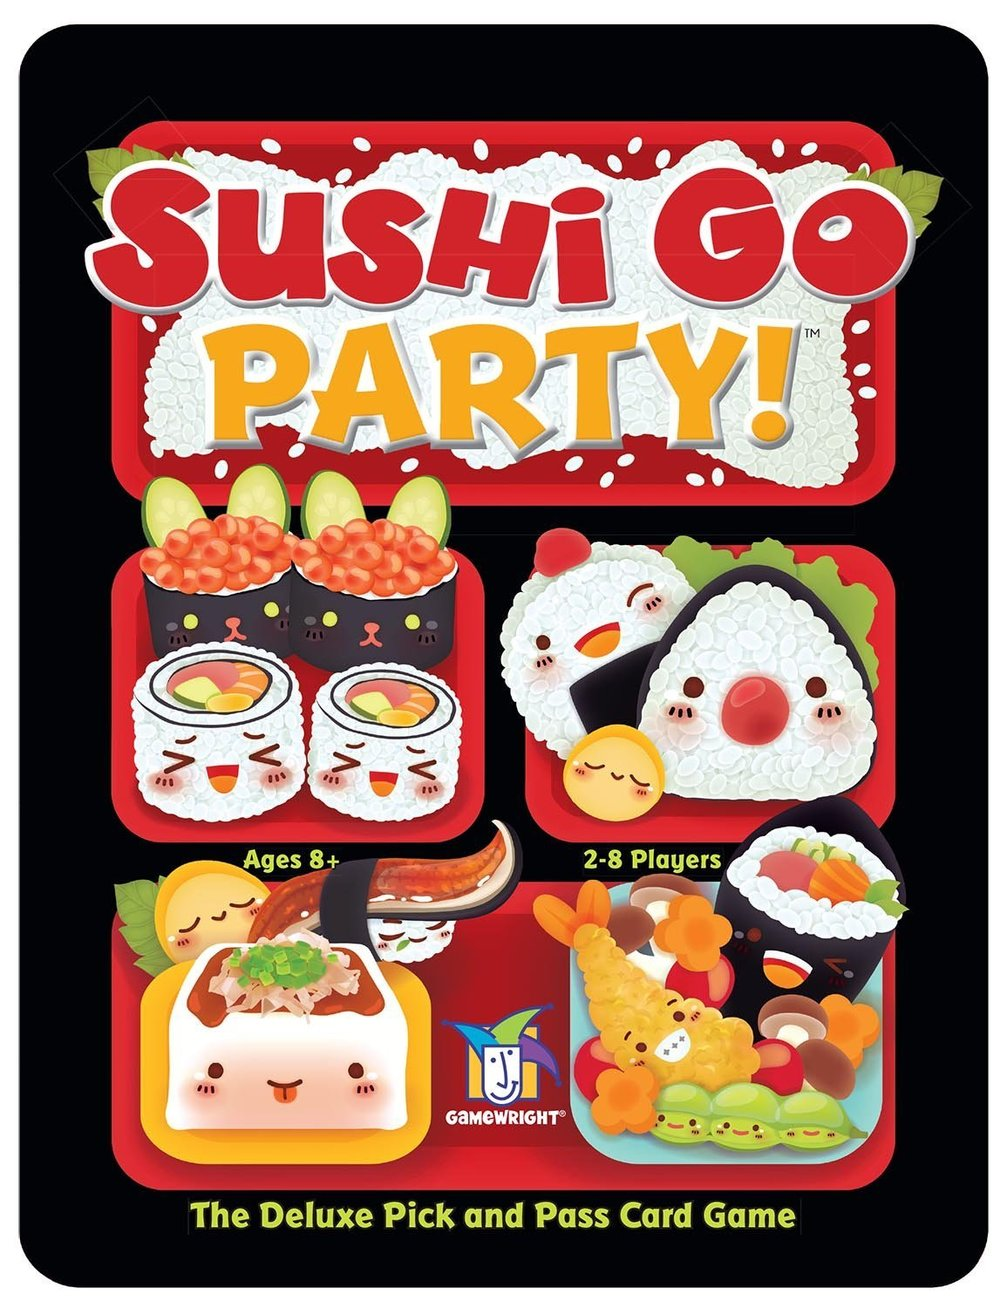 Sushi Go Party! - INTRODUCES: Card DraftingSushi Go Party is an excellent game for beginners because it has a good mix of strategy and luck combined. You can play up to 8 players which makes it a great easy group game.Sushi Go Party is a card drafting game where each player looks through a stack of cards, picks one, and passes it to the player to their left. Players try to select card combinations that will score them the most points at the end of three rounds. This is a great introduction to card drafting mechanics and prepares players to play more advanced games like Dominion and 7 Wonders.